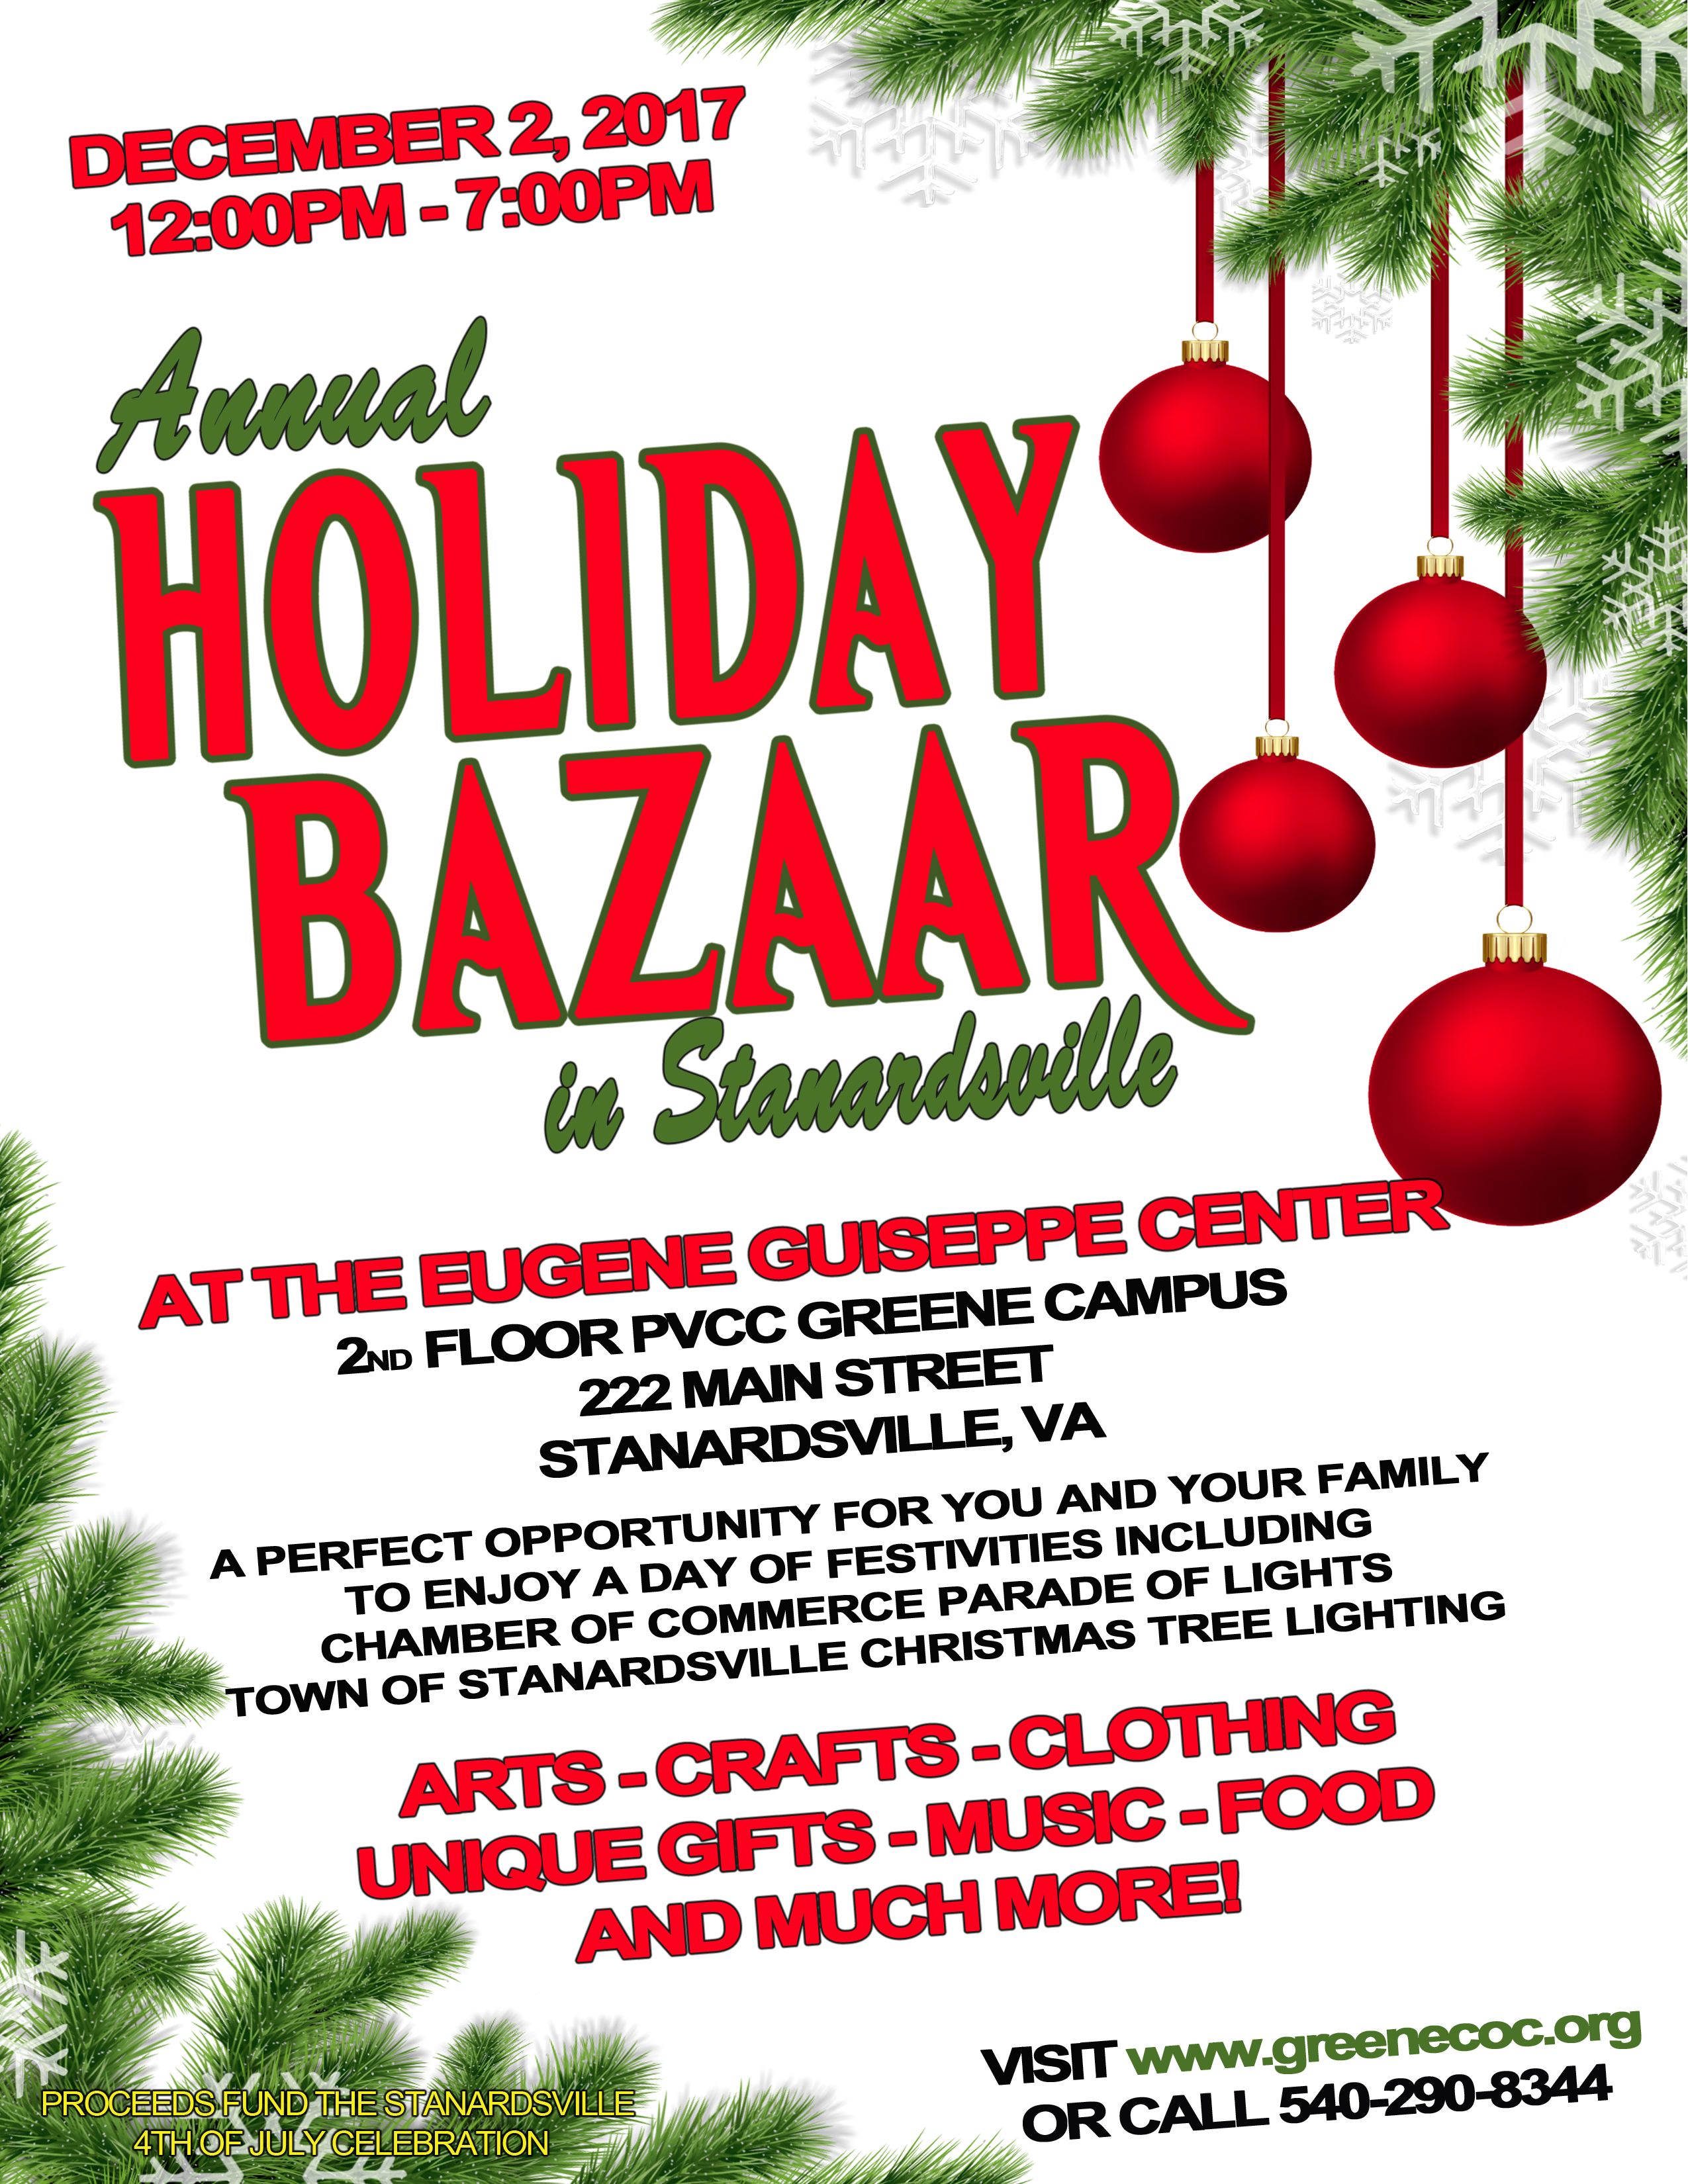 holiday bazaar december 2nd stanardsville